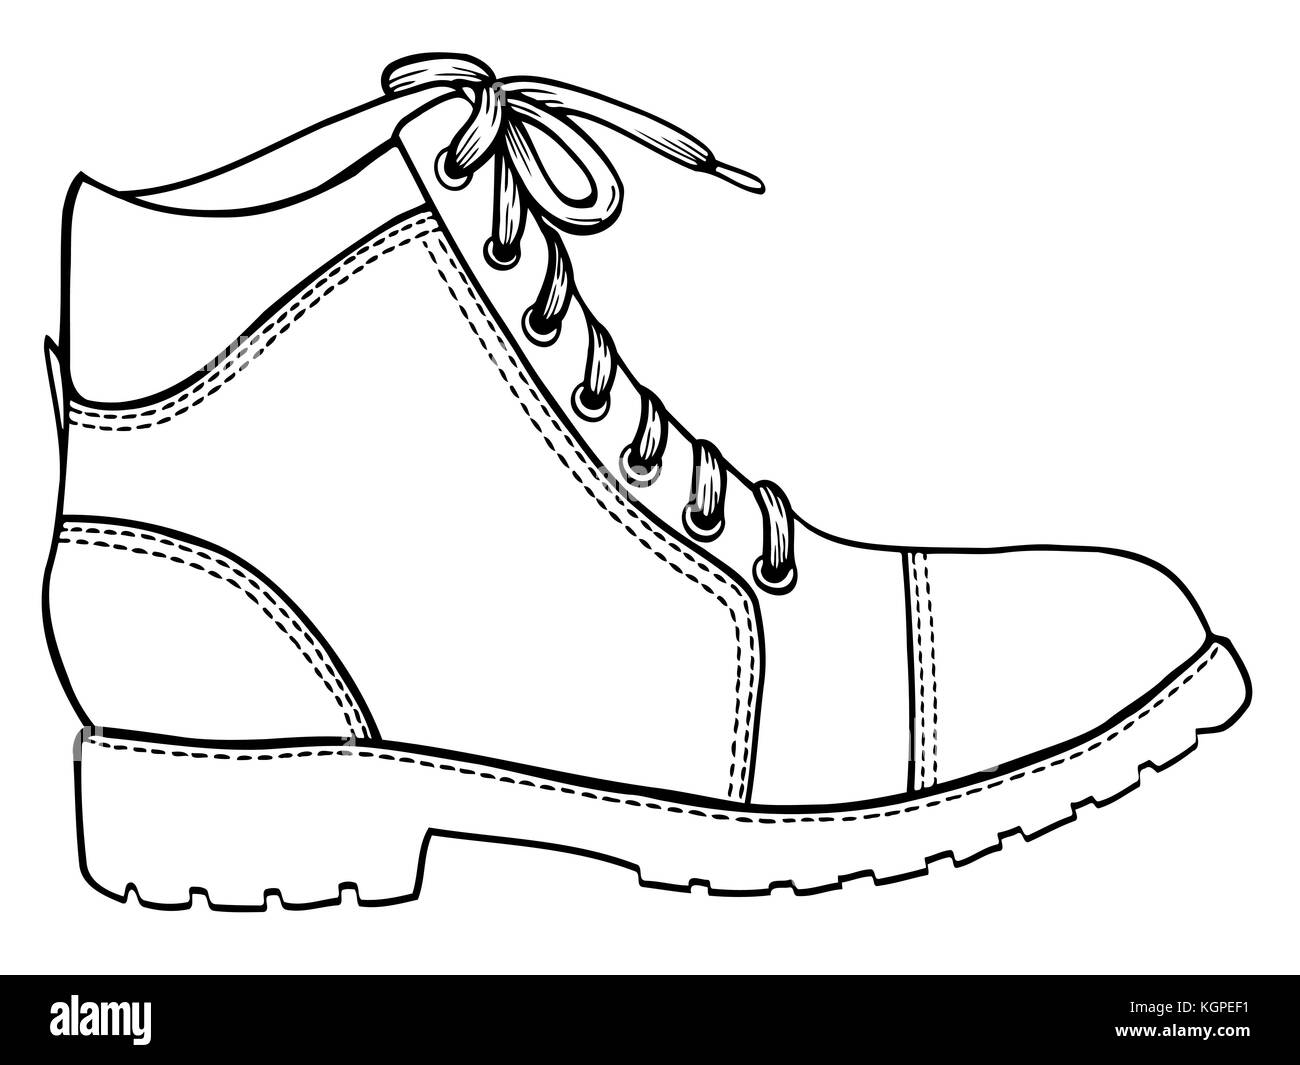 safety shoes sketch off 58% - www